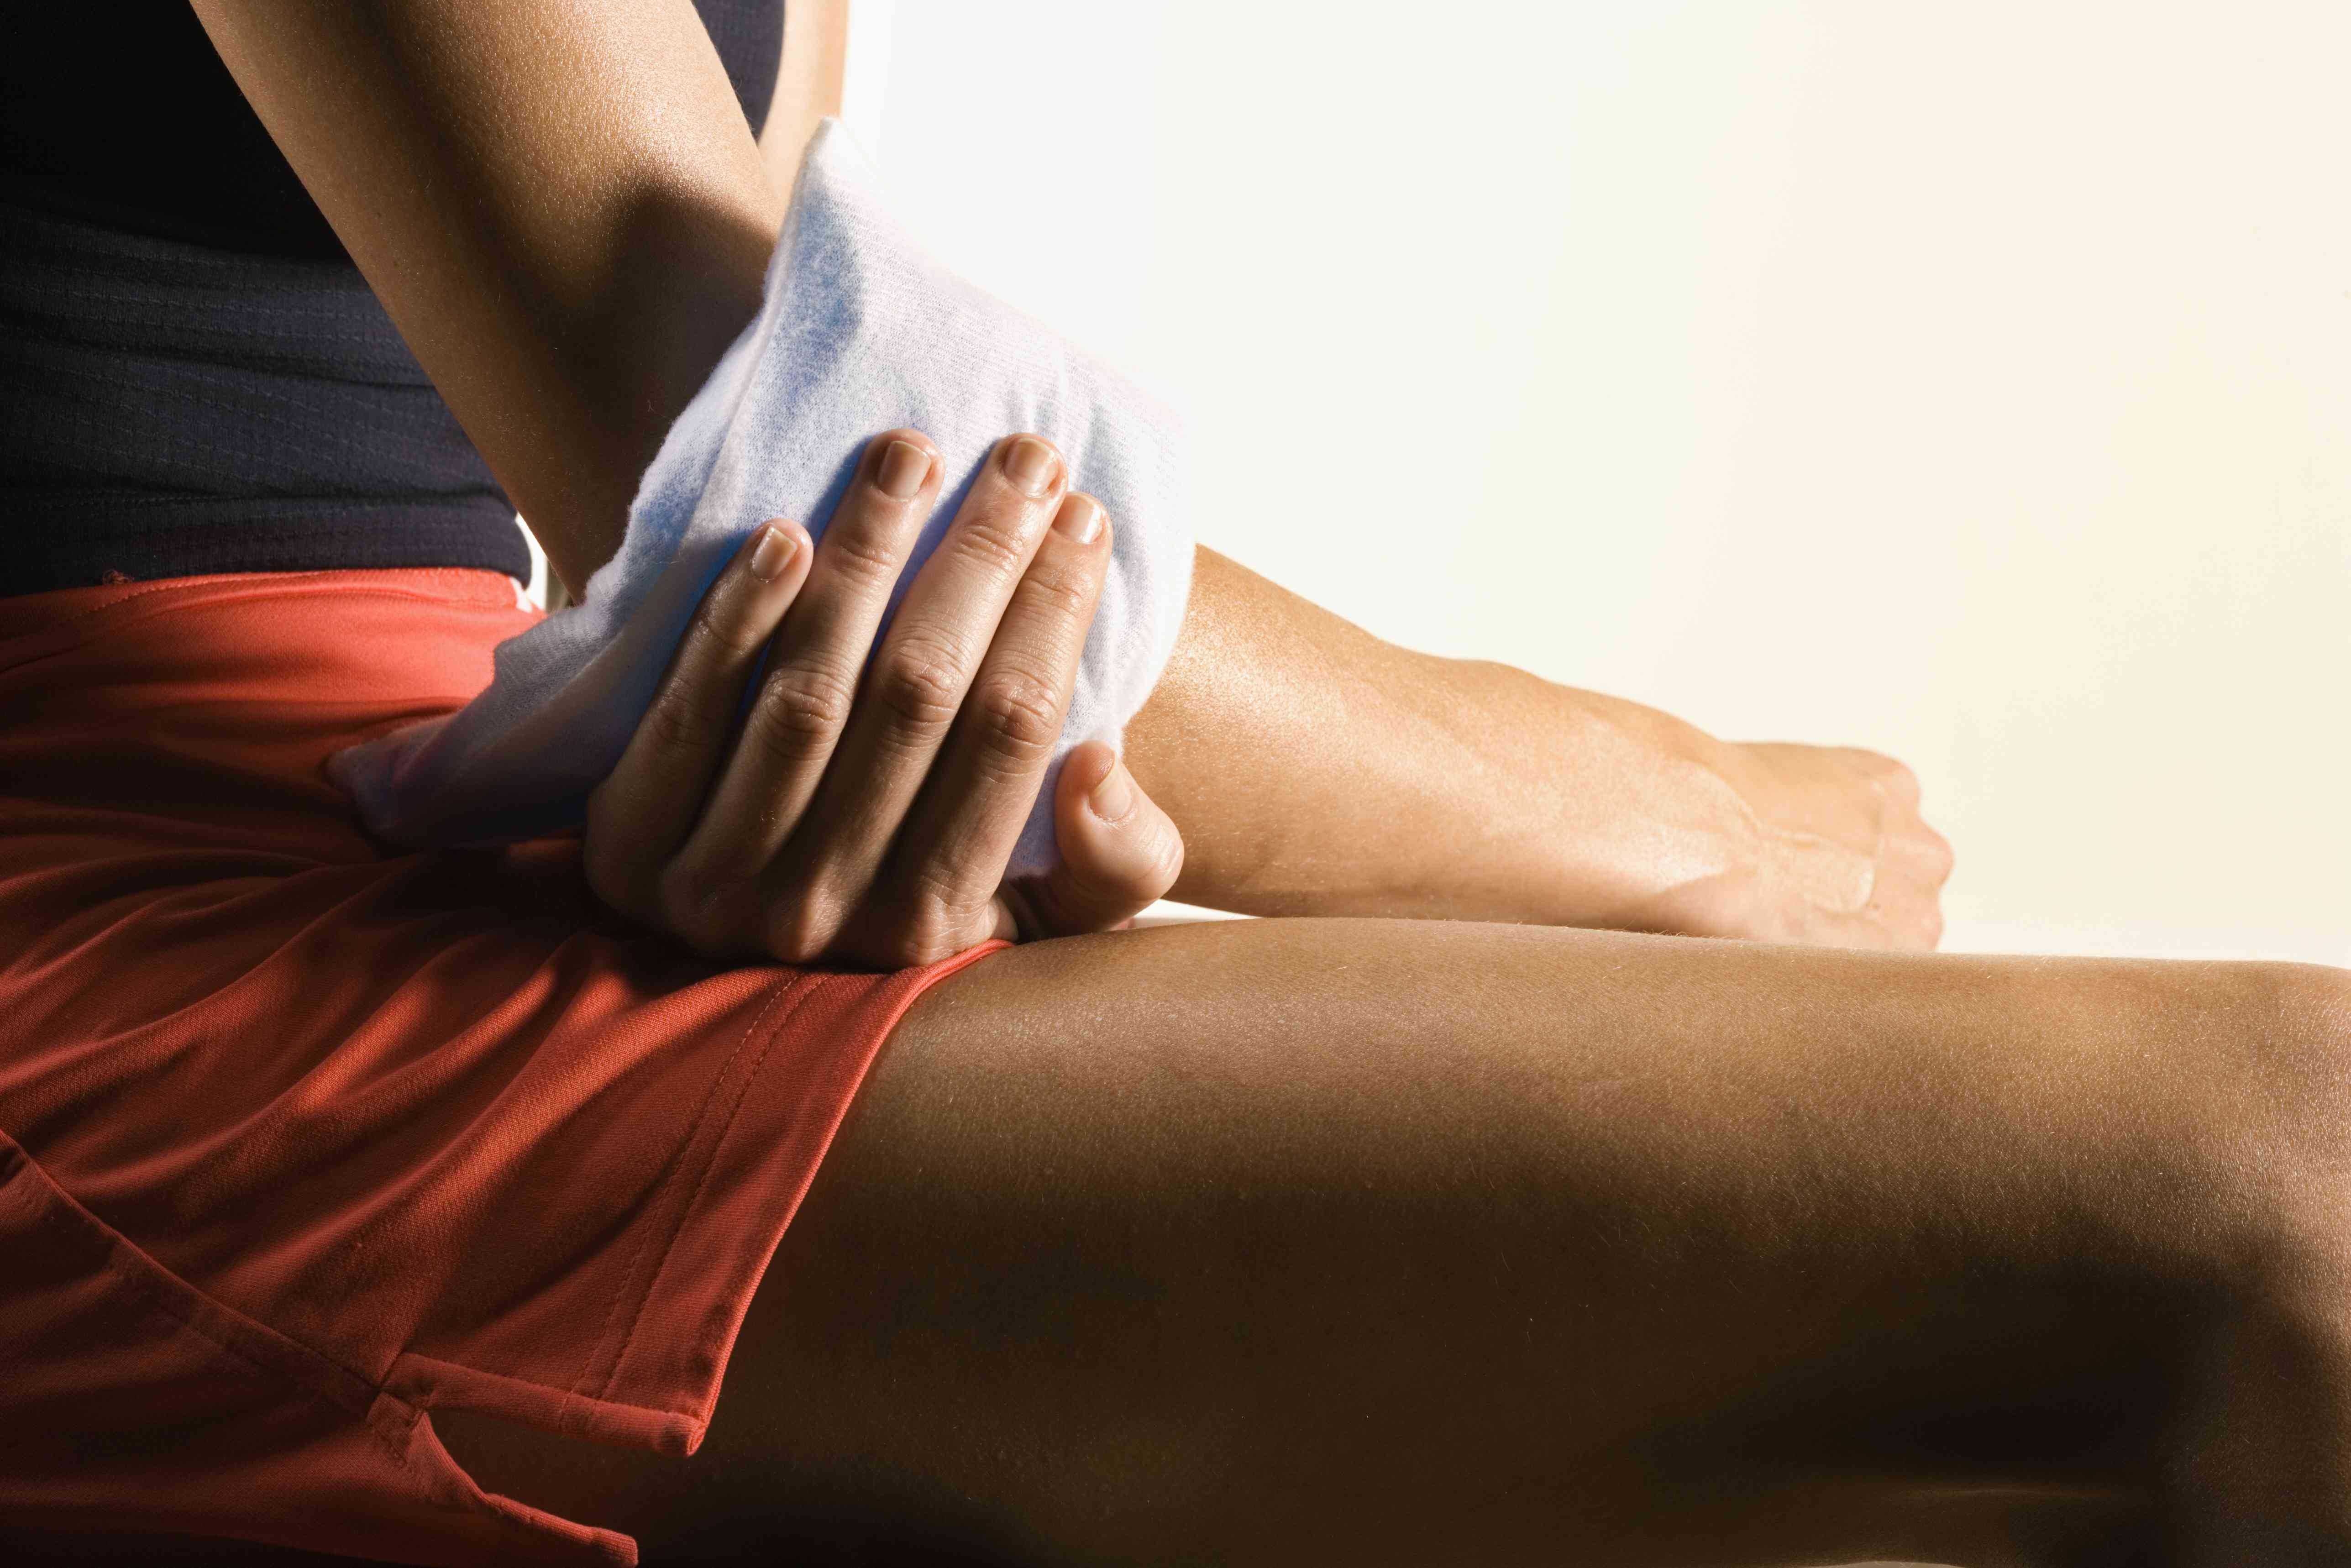 Woman with ice pack on elbow